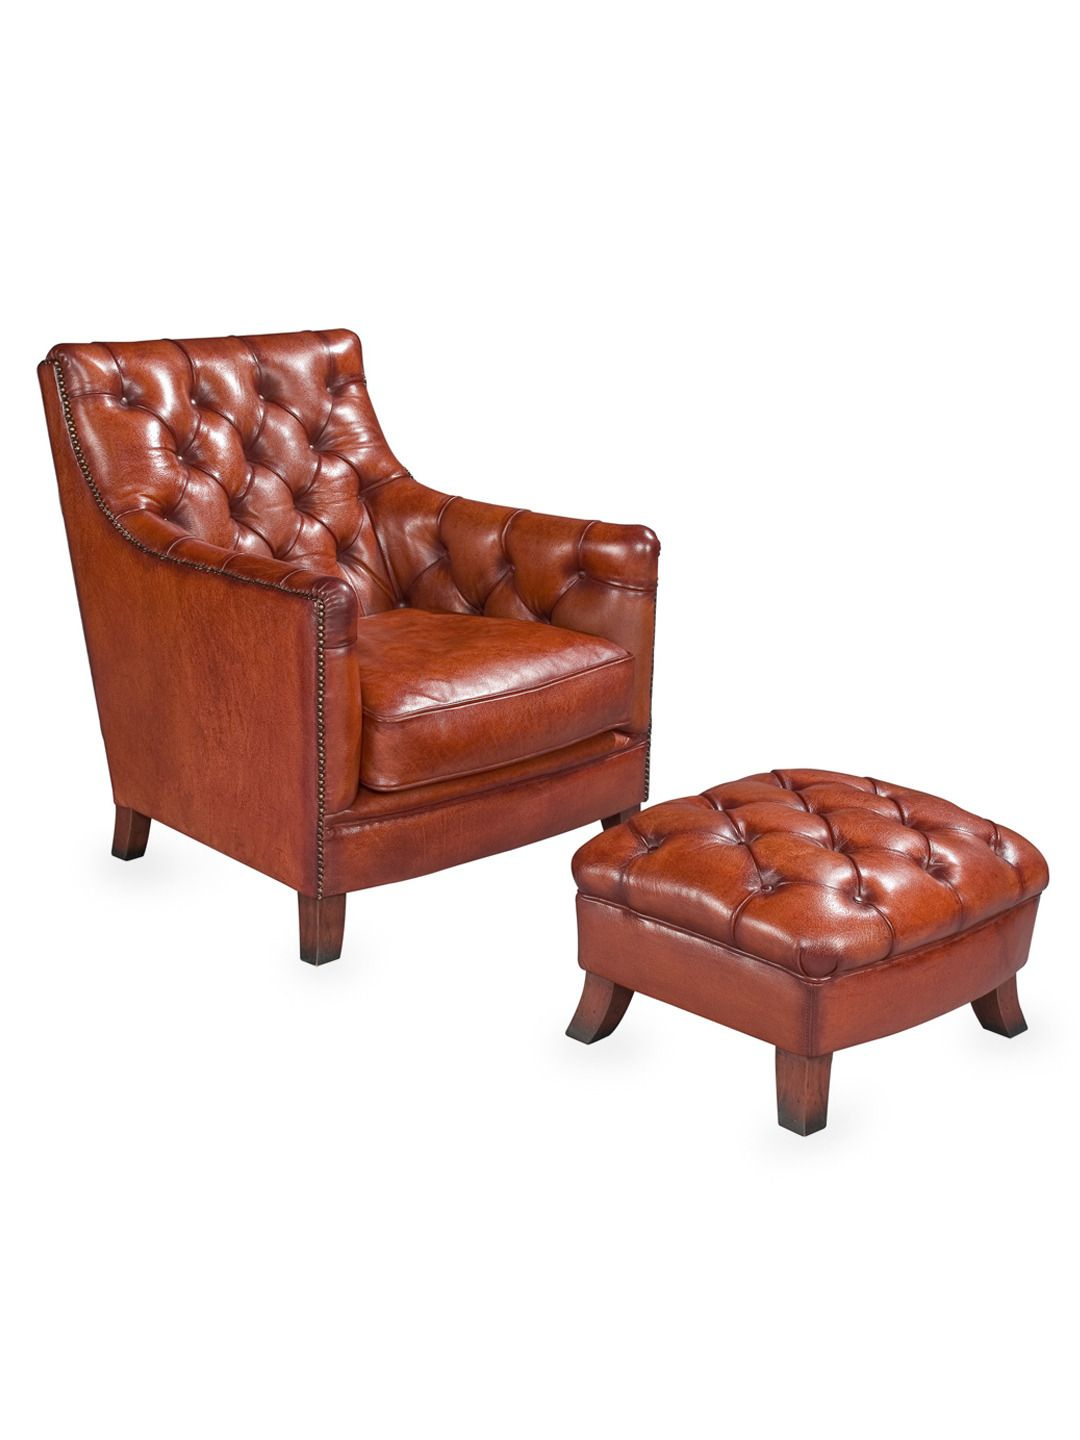 Kick Off Your Shoes And Put Your Feet Up Classy Chair Chair And Ottoman Club Chairs